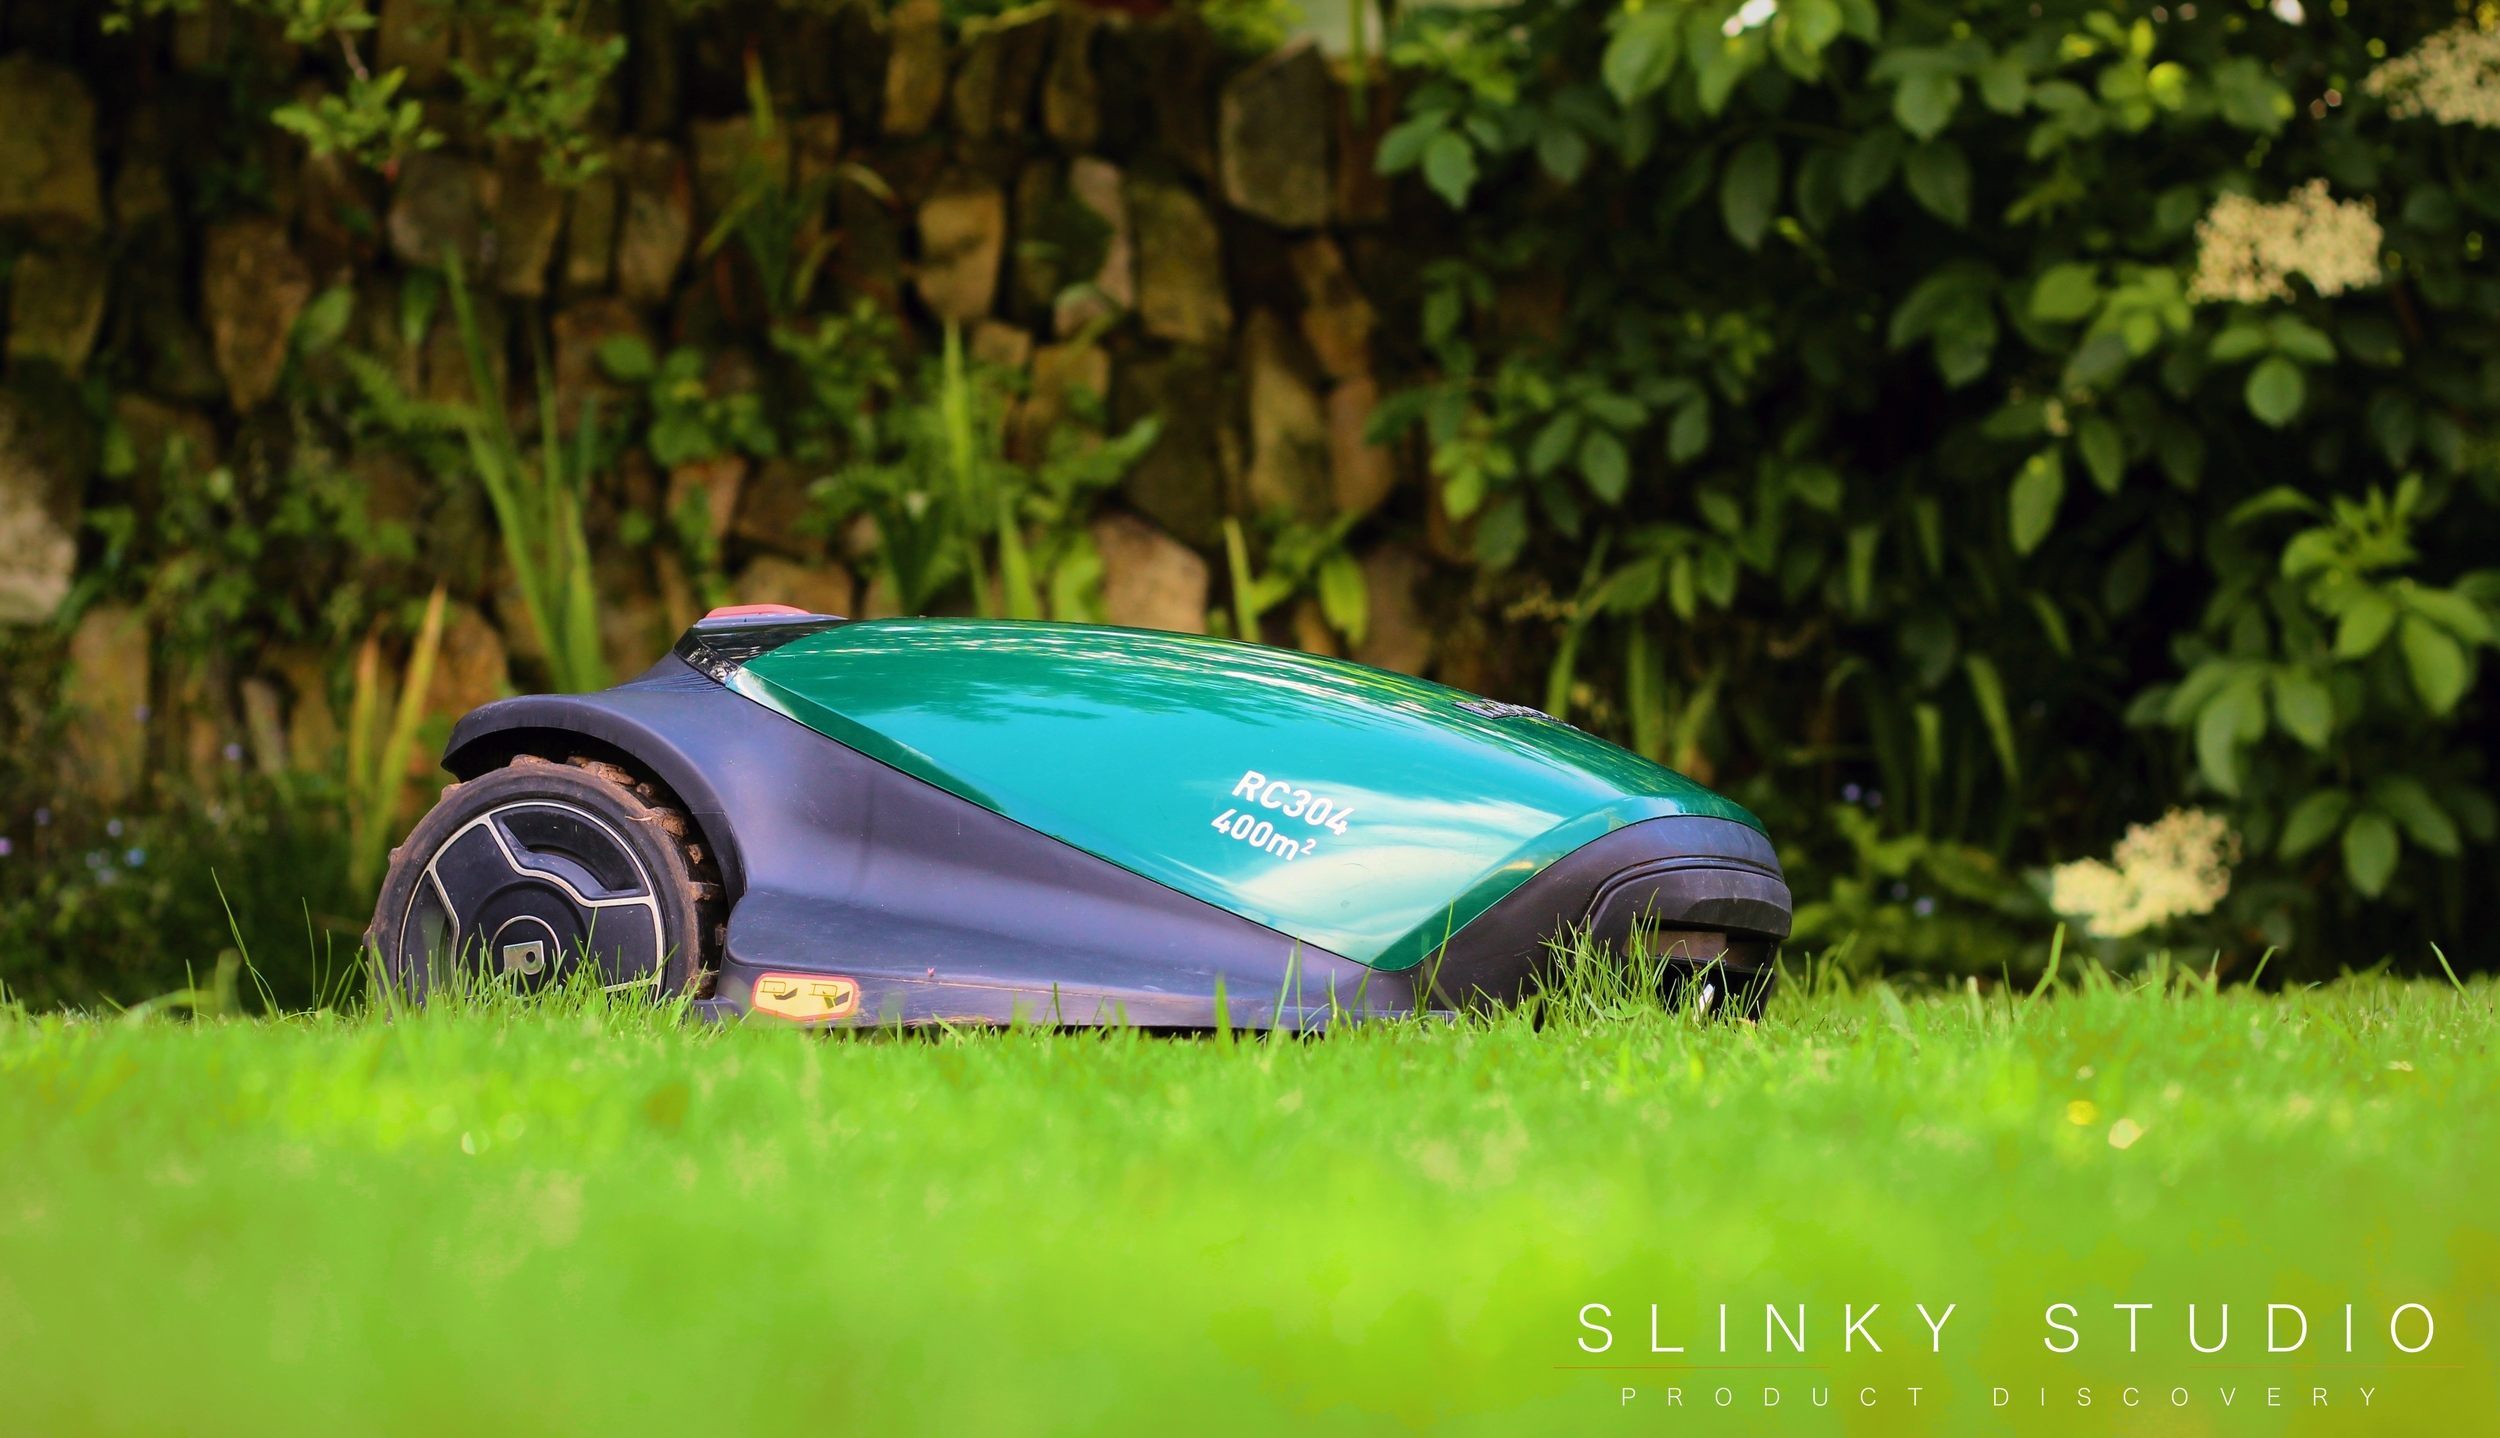 Robomow RC304 Robot Lawnmower Mowing Lawn Side View.jpg